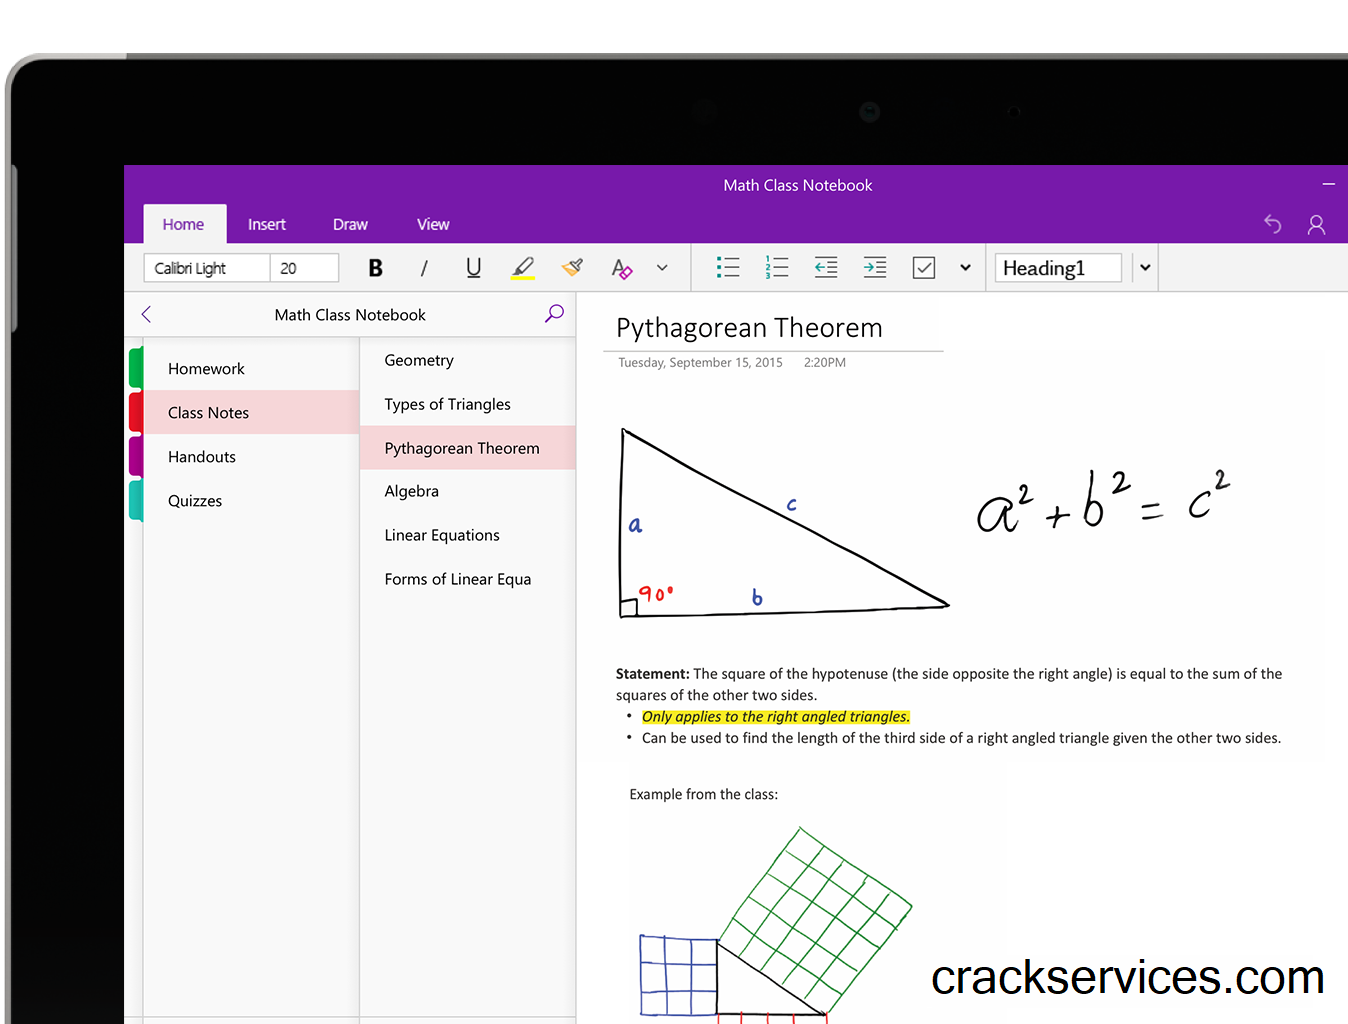 Microsoft OneNote Crack 16.44 with Product Key Full 2021